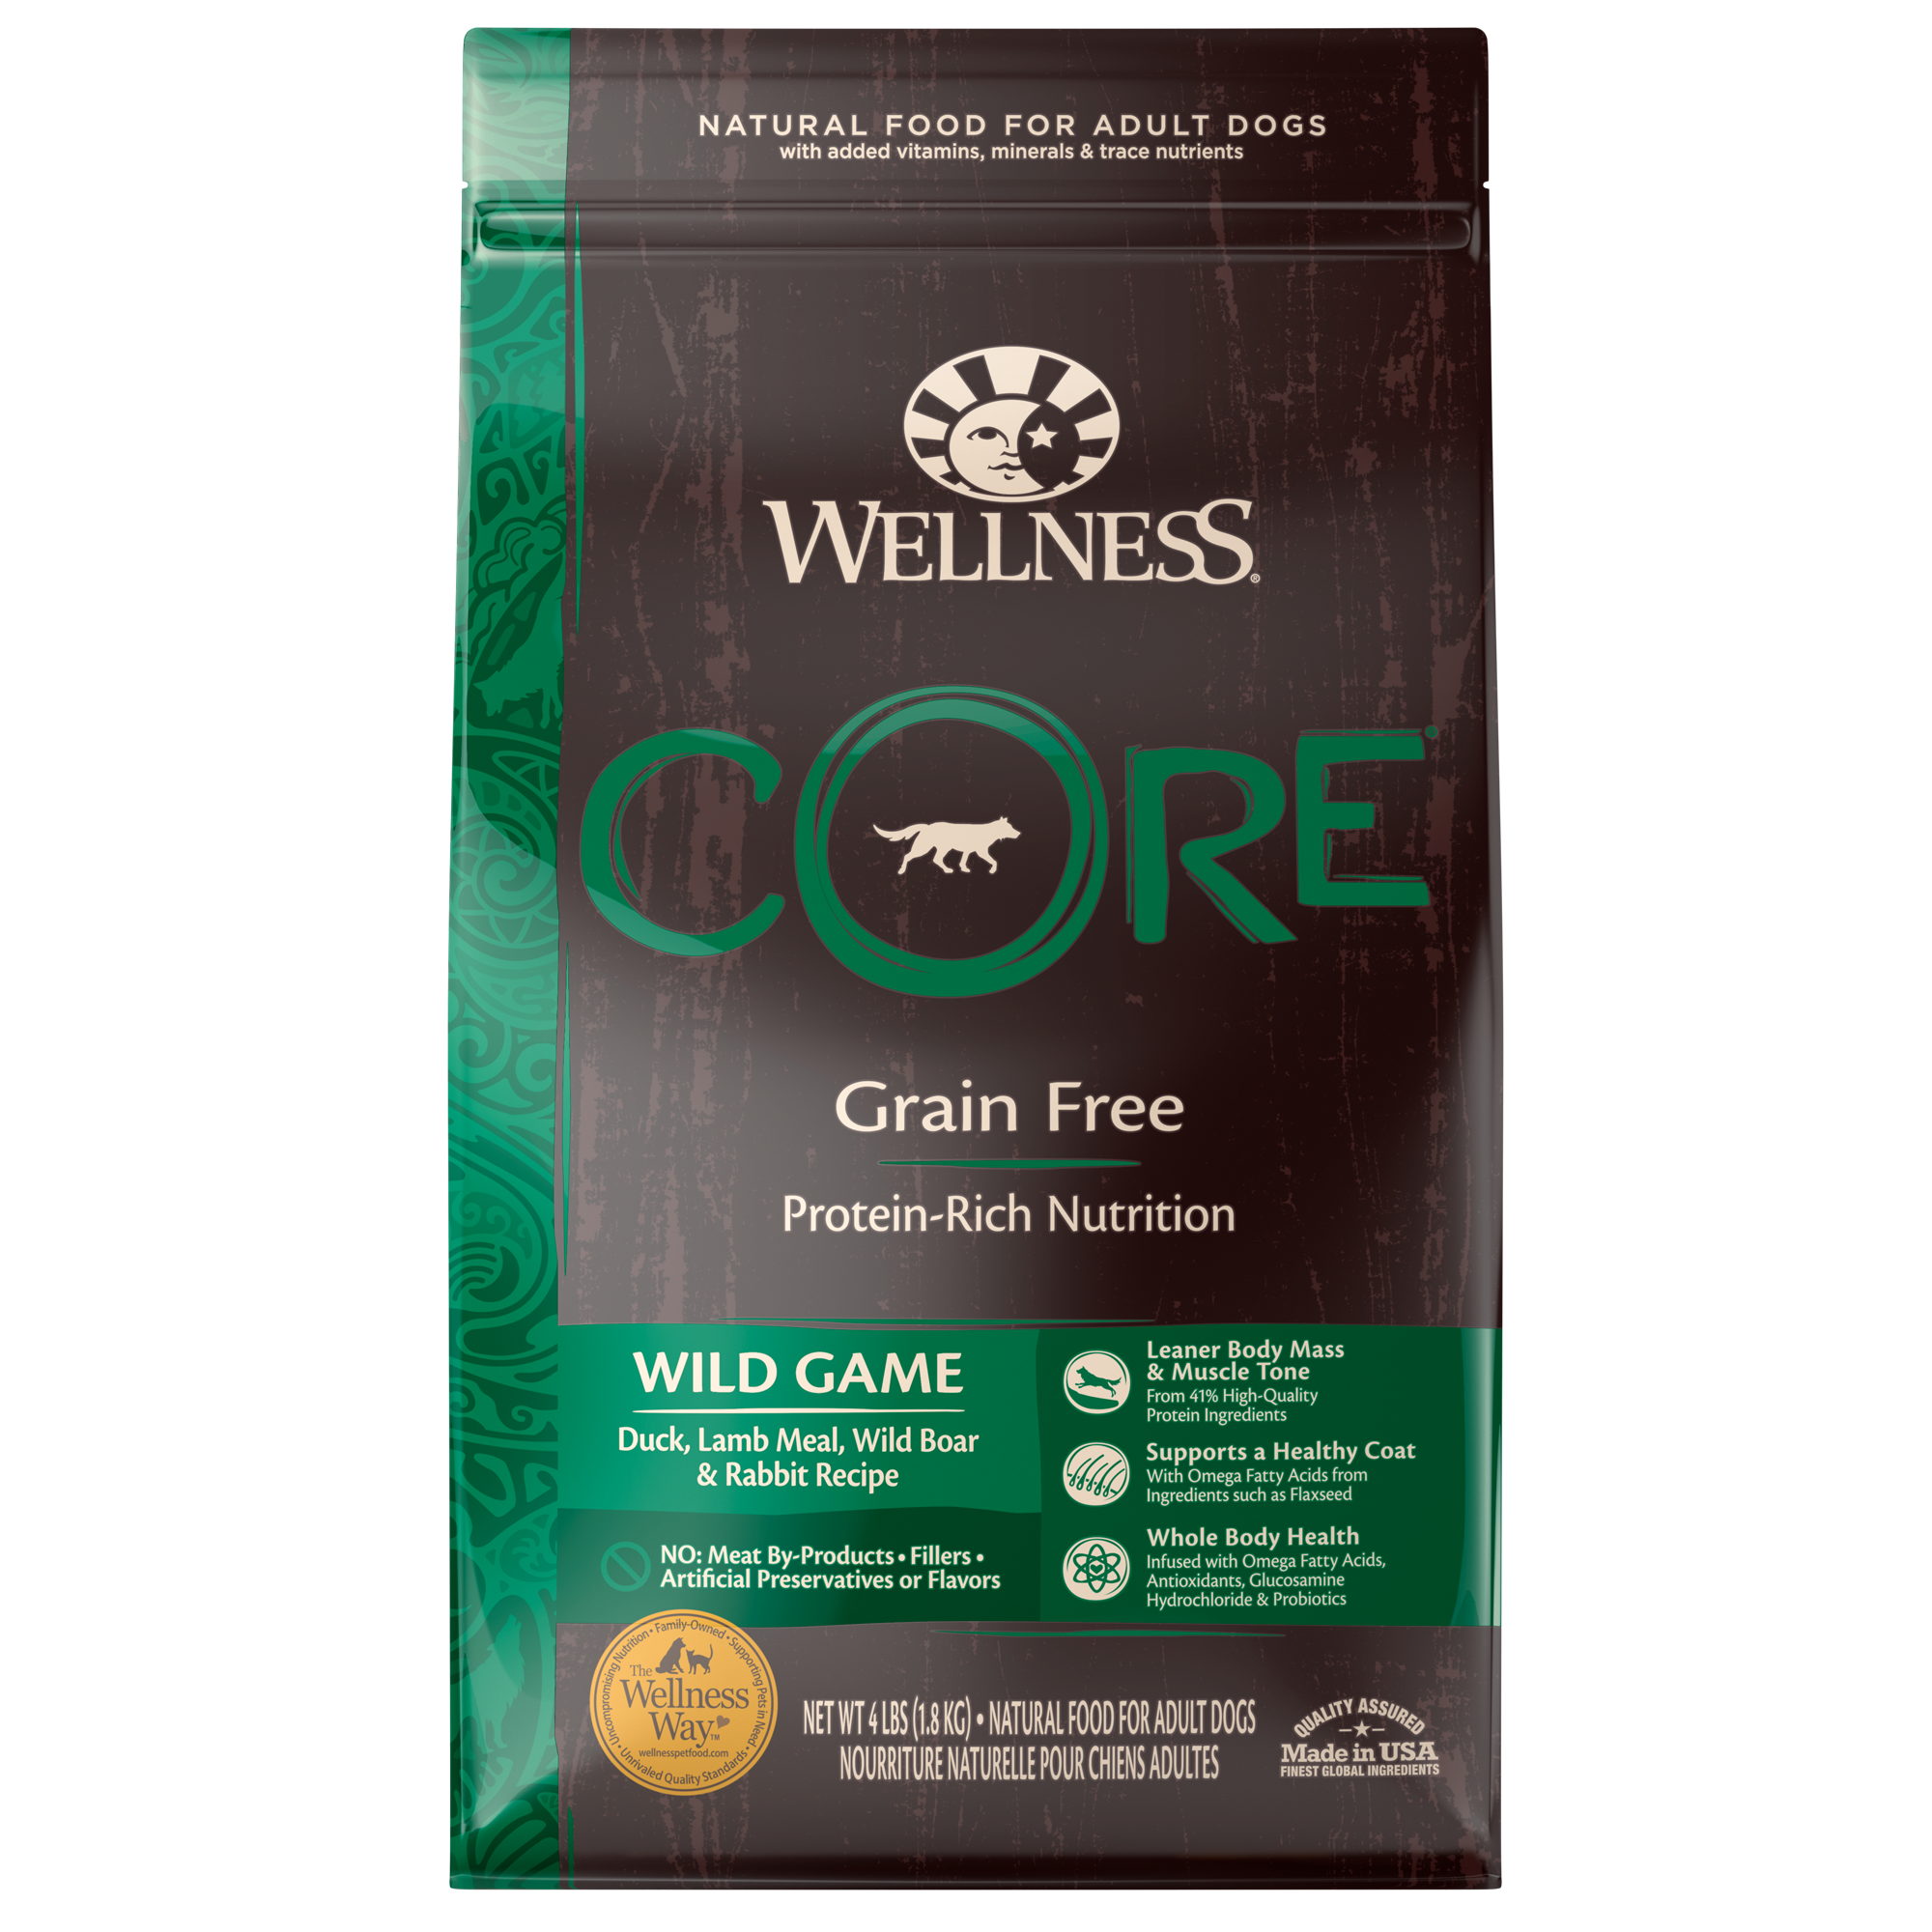 Core Wild Game Wellness Pet Food